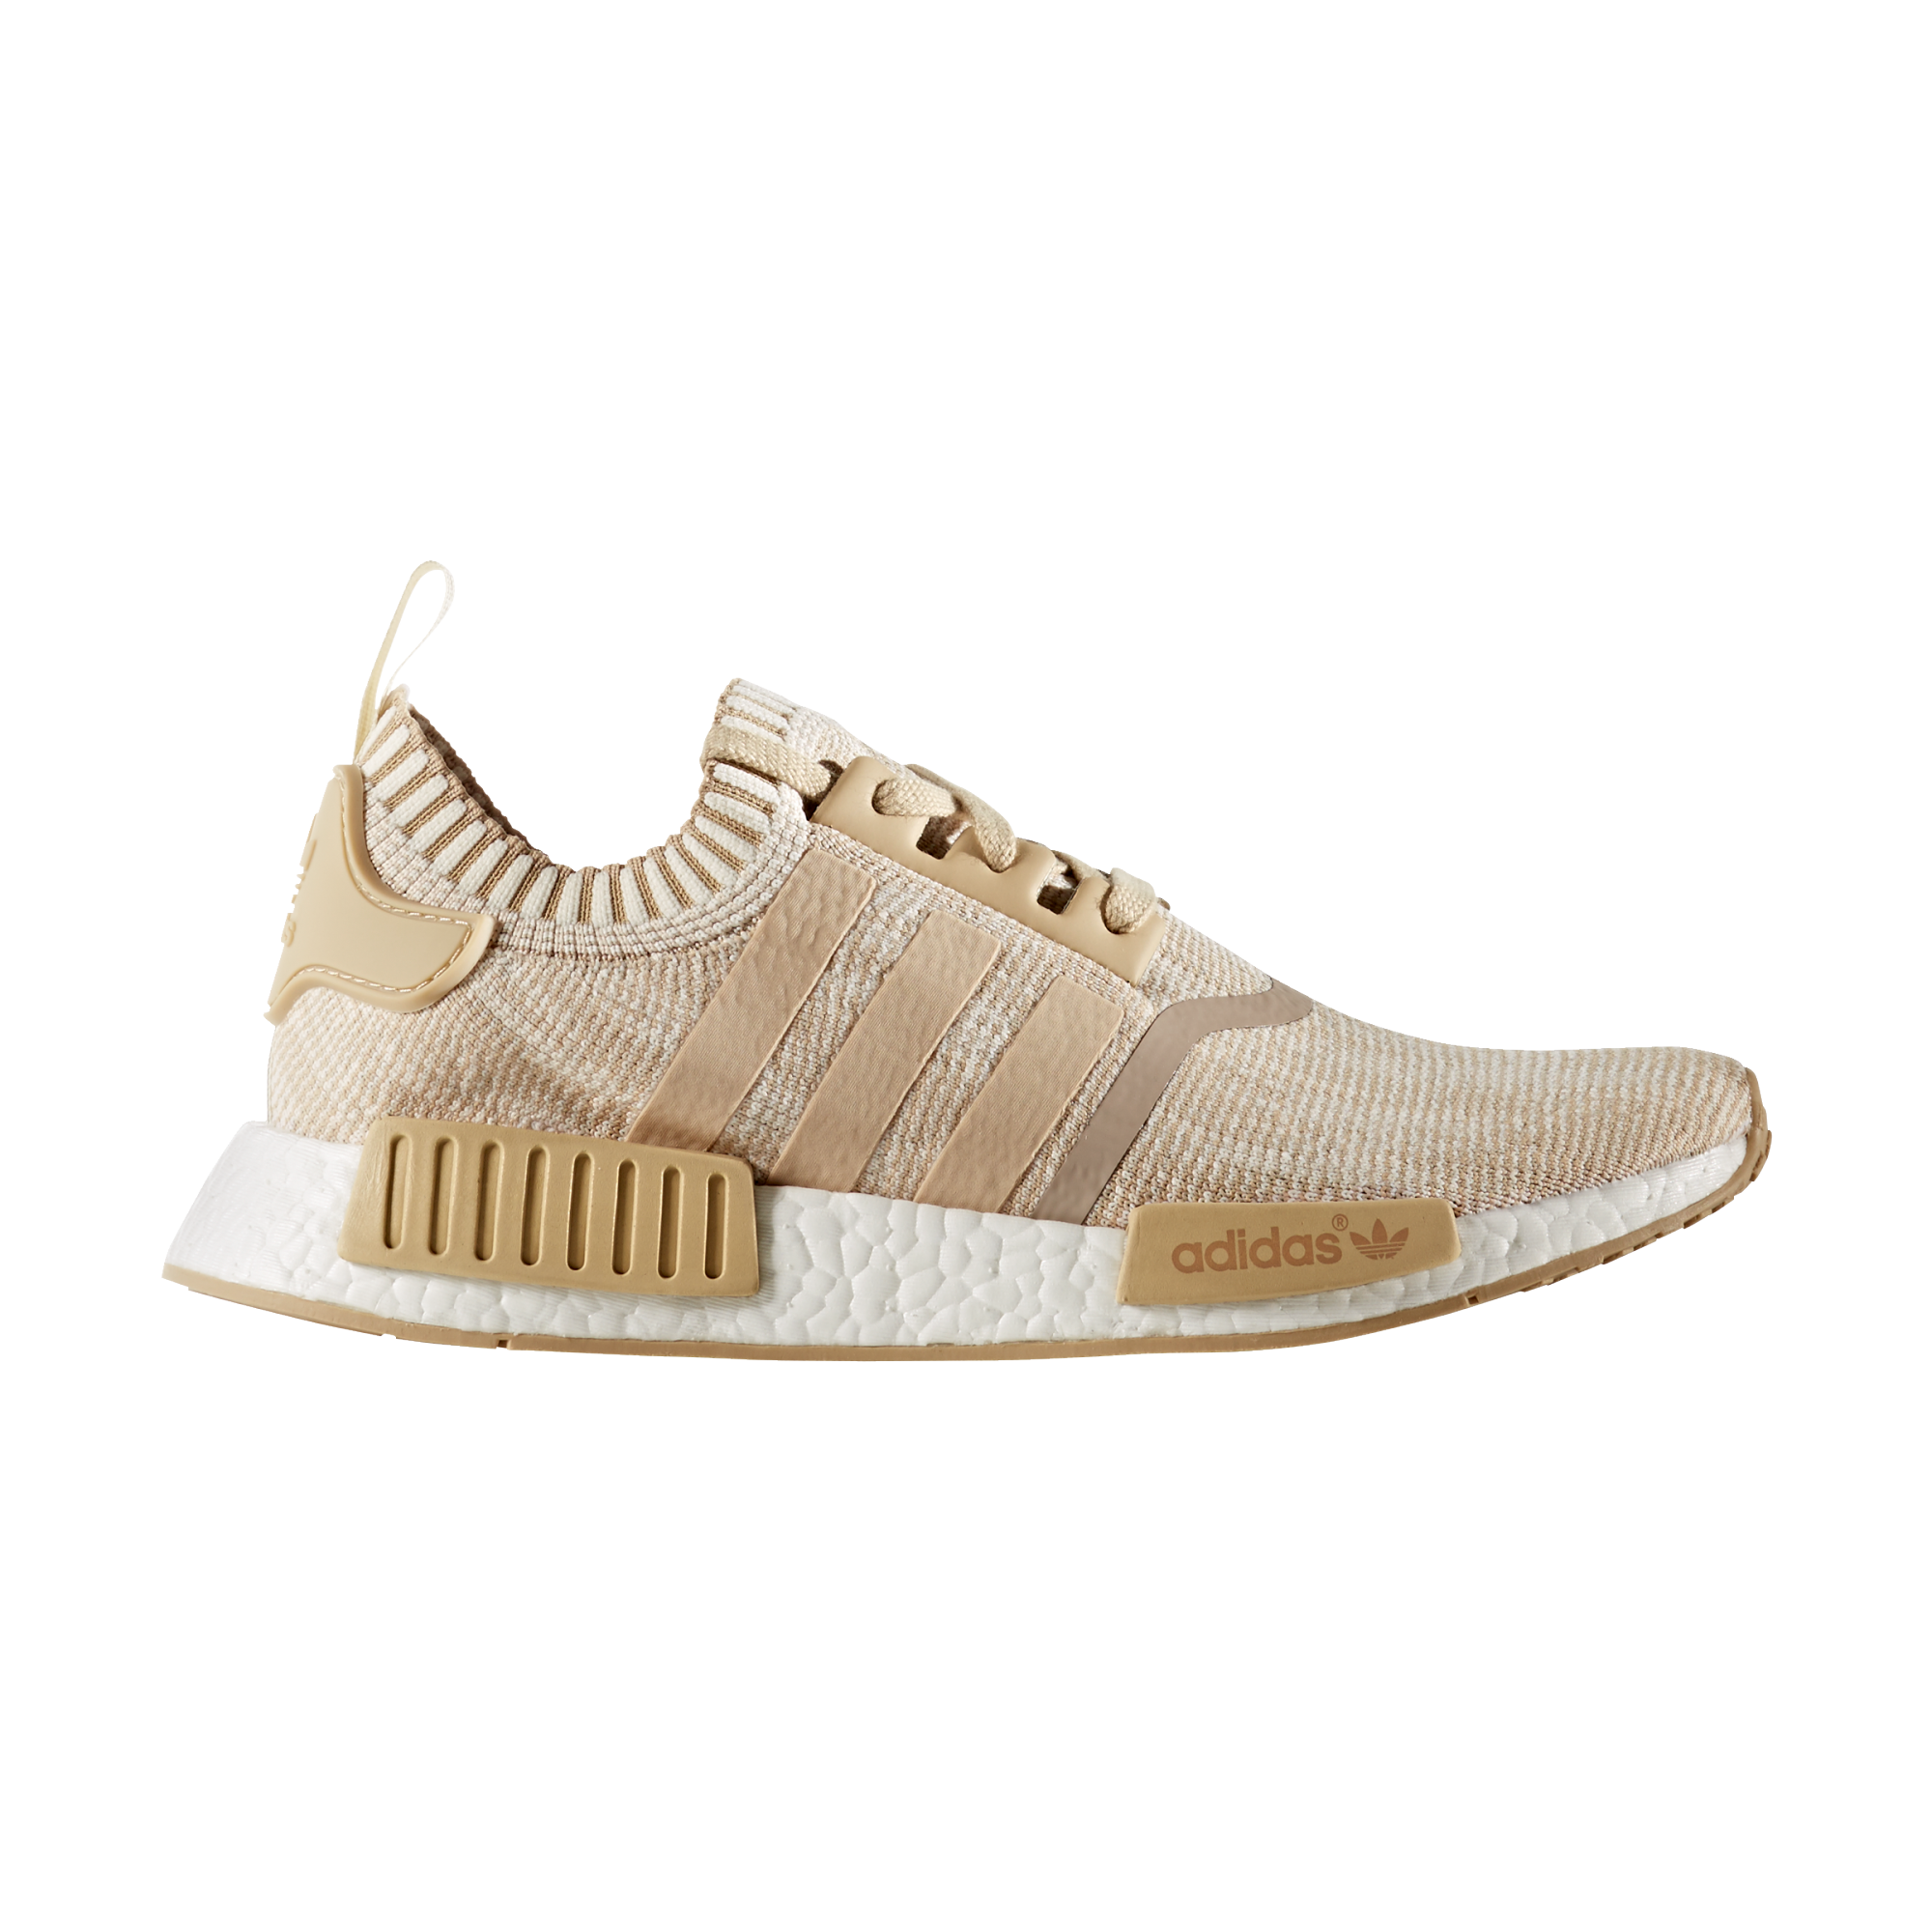 adidas shoes nmd white. free shipping no minimum. 5 out of stars. read reviews. (2). adidas nmd shoes nmd white